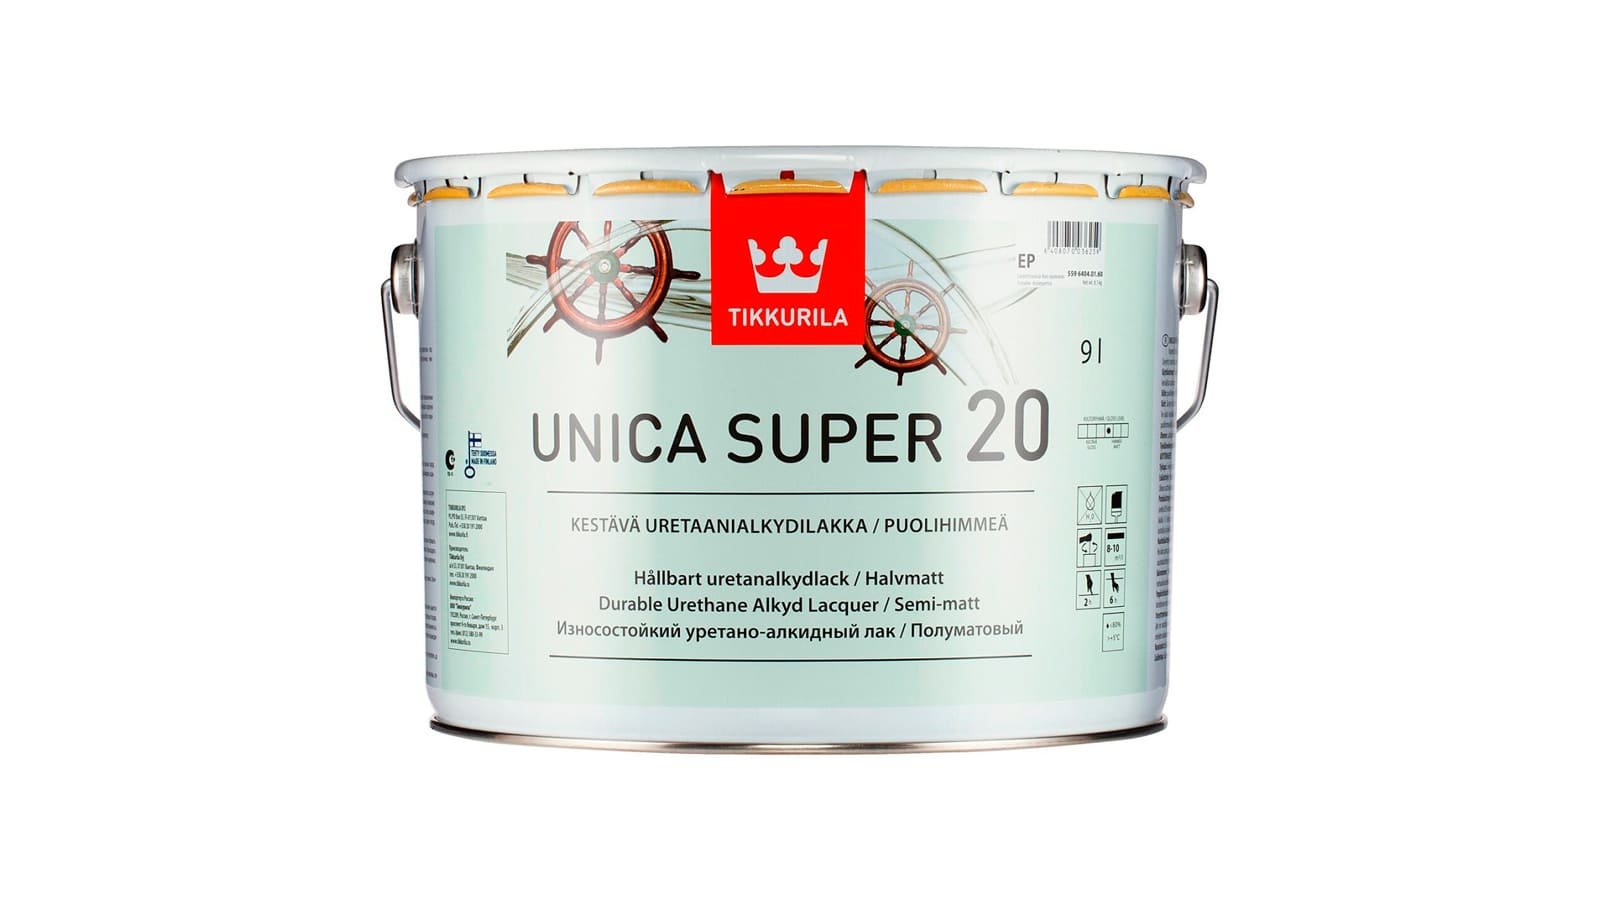 Tikkurila Unica Super